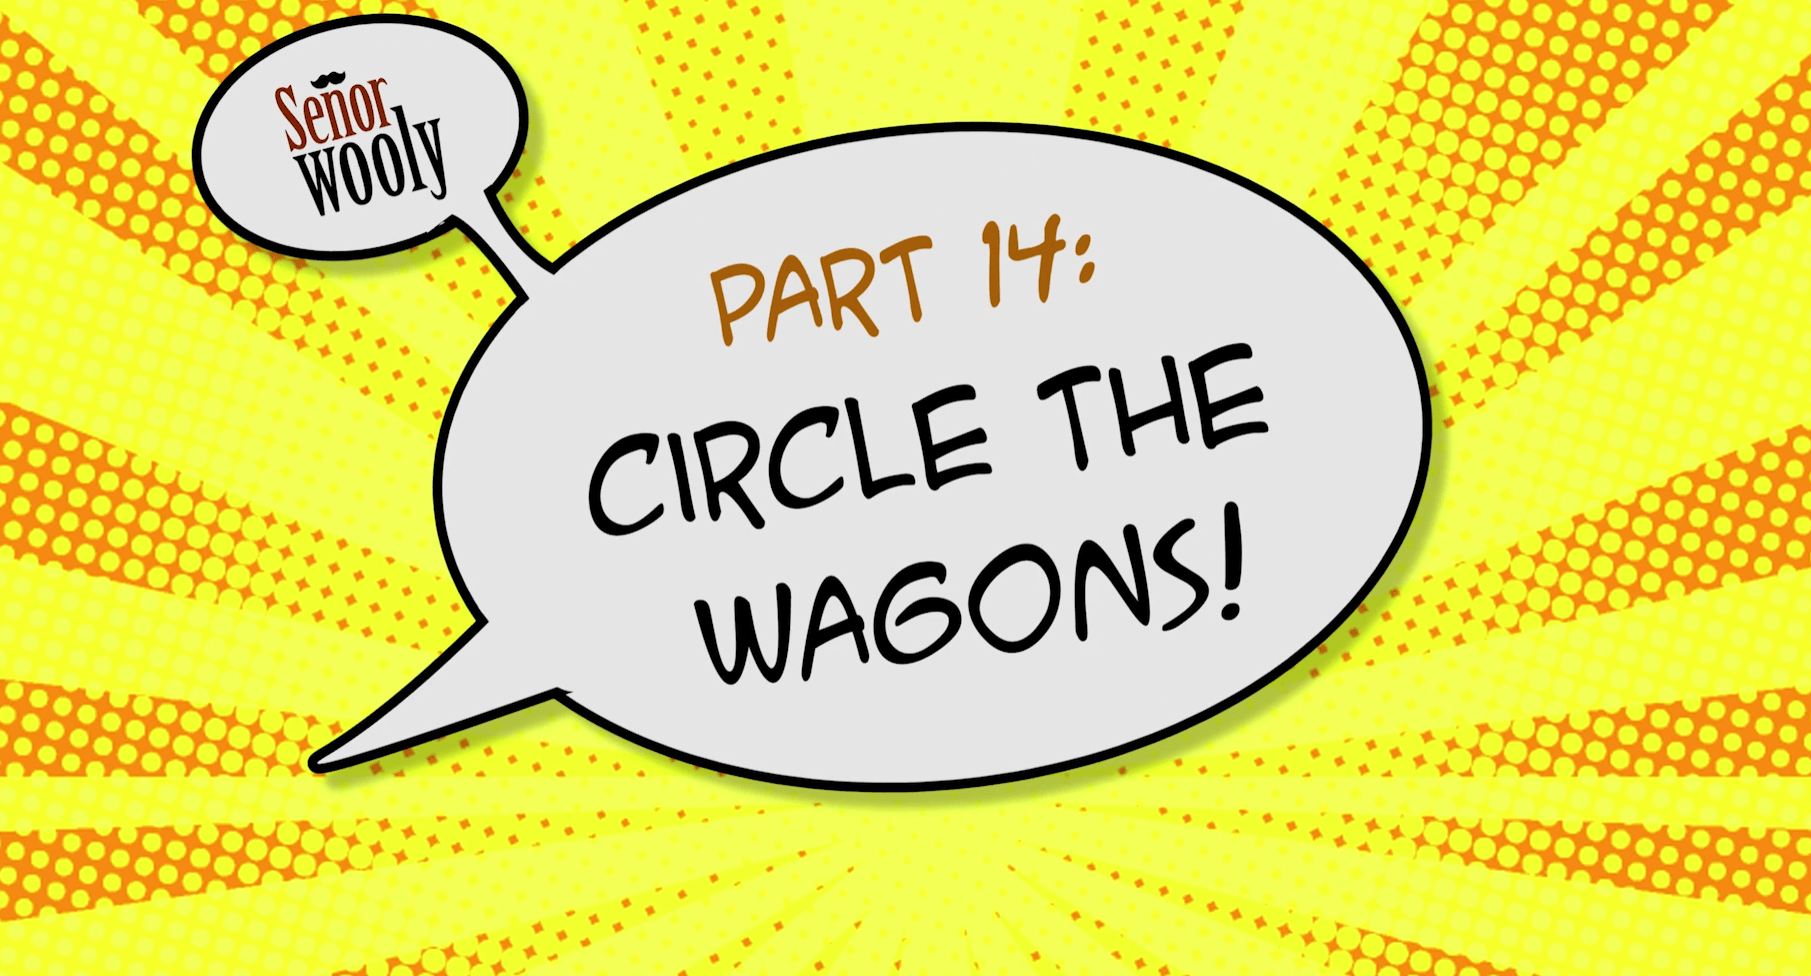 Part 14 - Circle the Wagons!